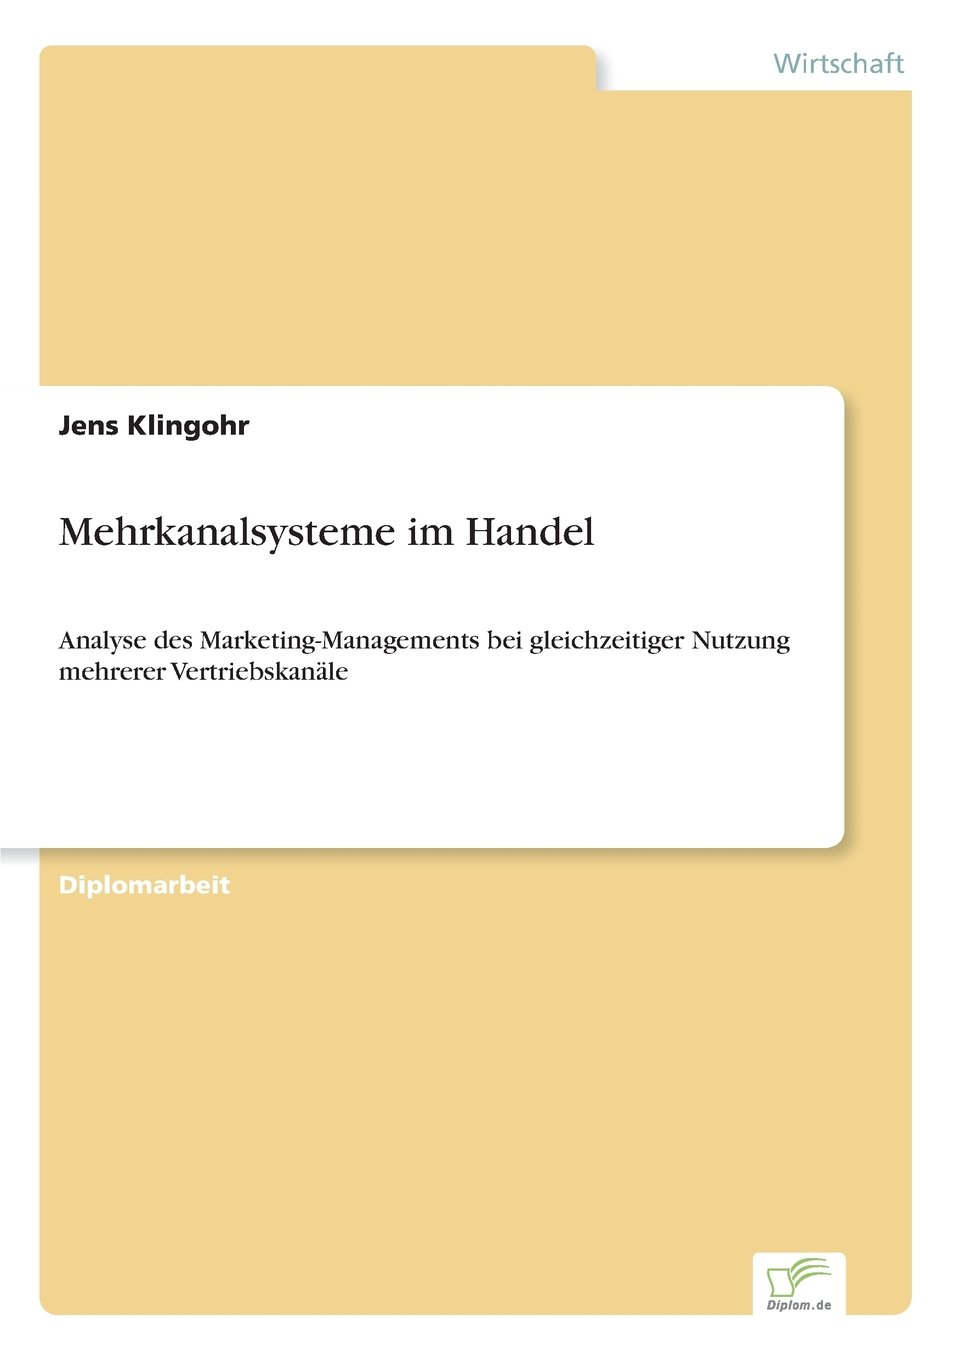 Download Mehrkanalsysteme im Handel: Analyse des Marketing-Managements bei gleichzeitiger Nutzung mehrerer Vertriebskanäle (German Edition) ebook